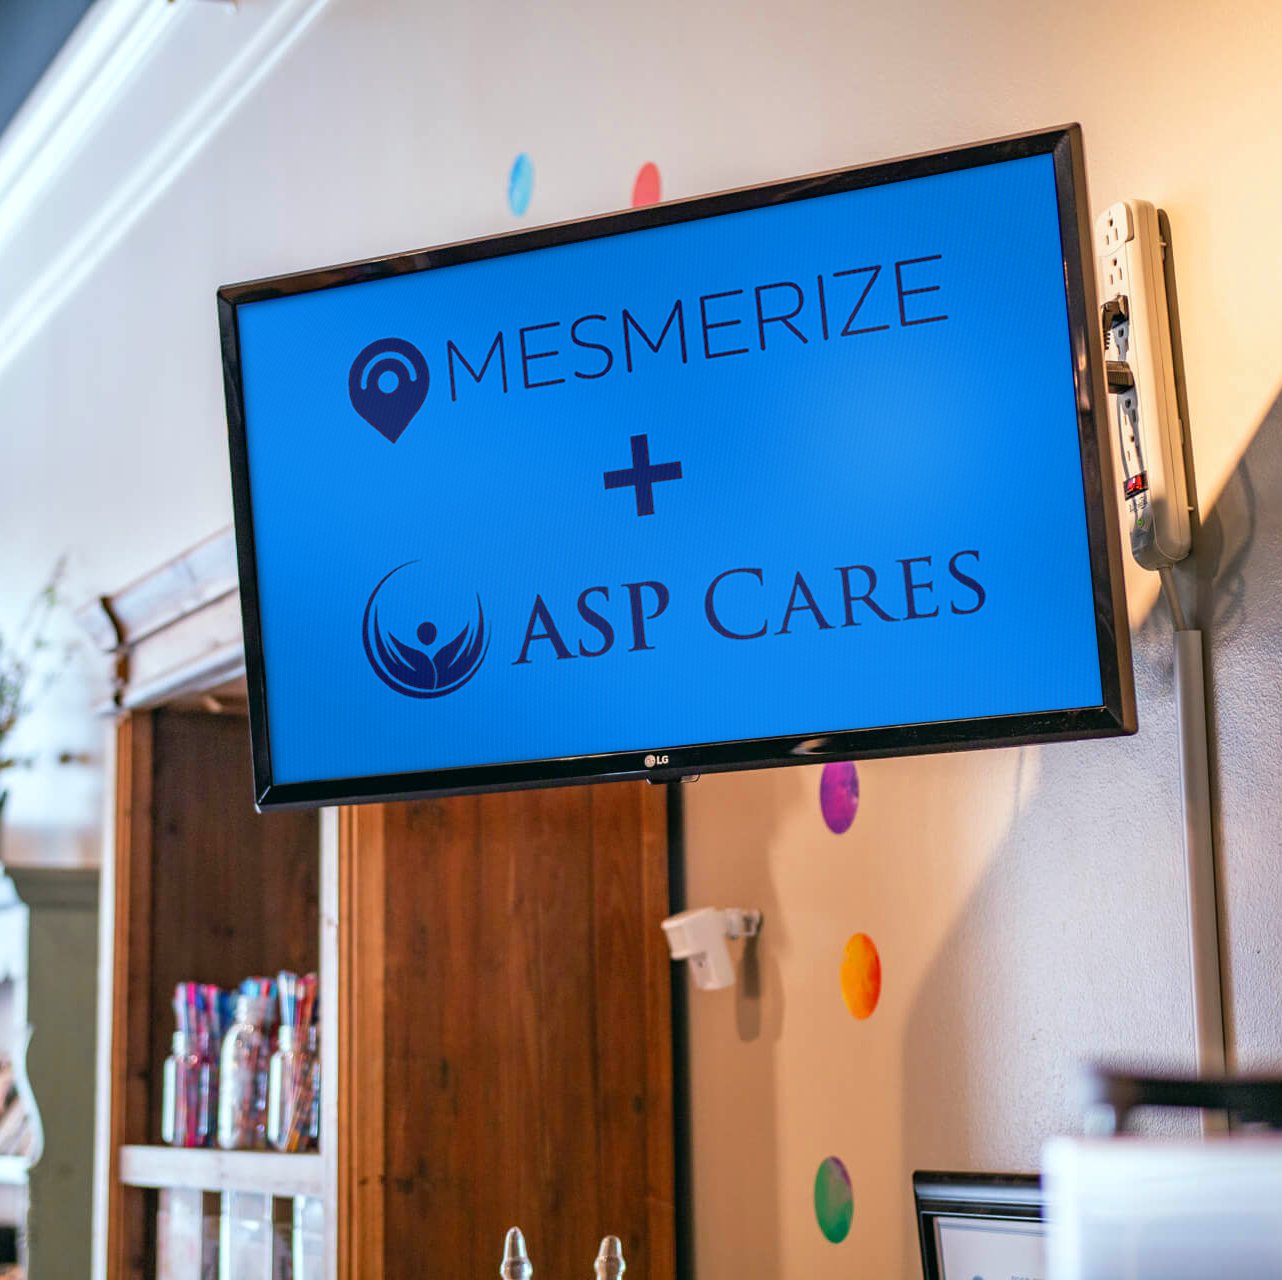 Mesmerize Expands Footprint To Specialty Pharmacies With ASP Cares